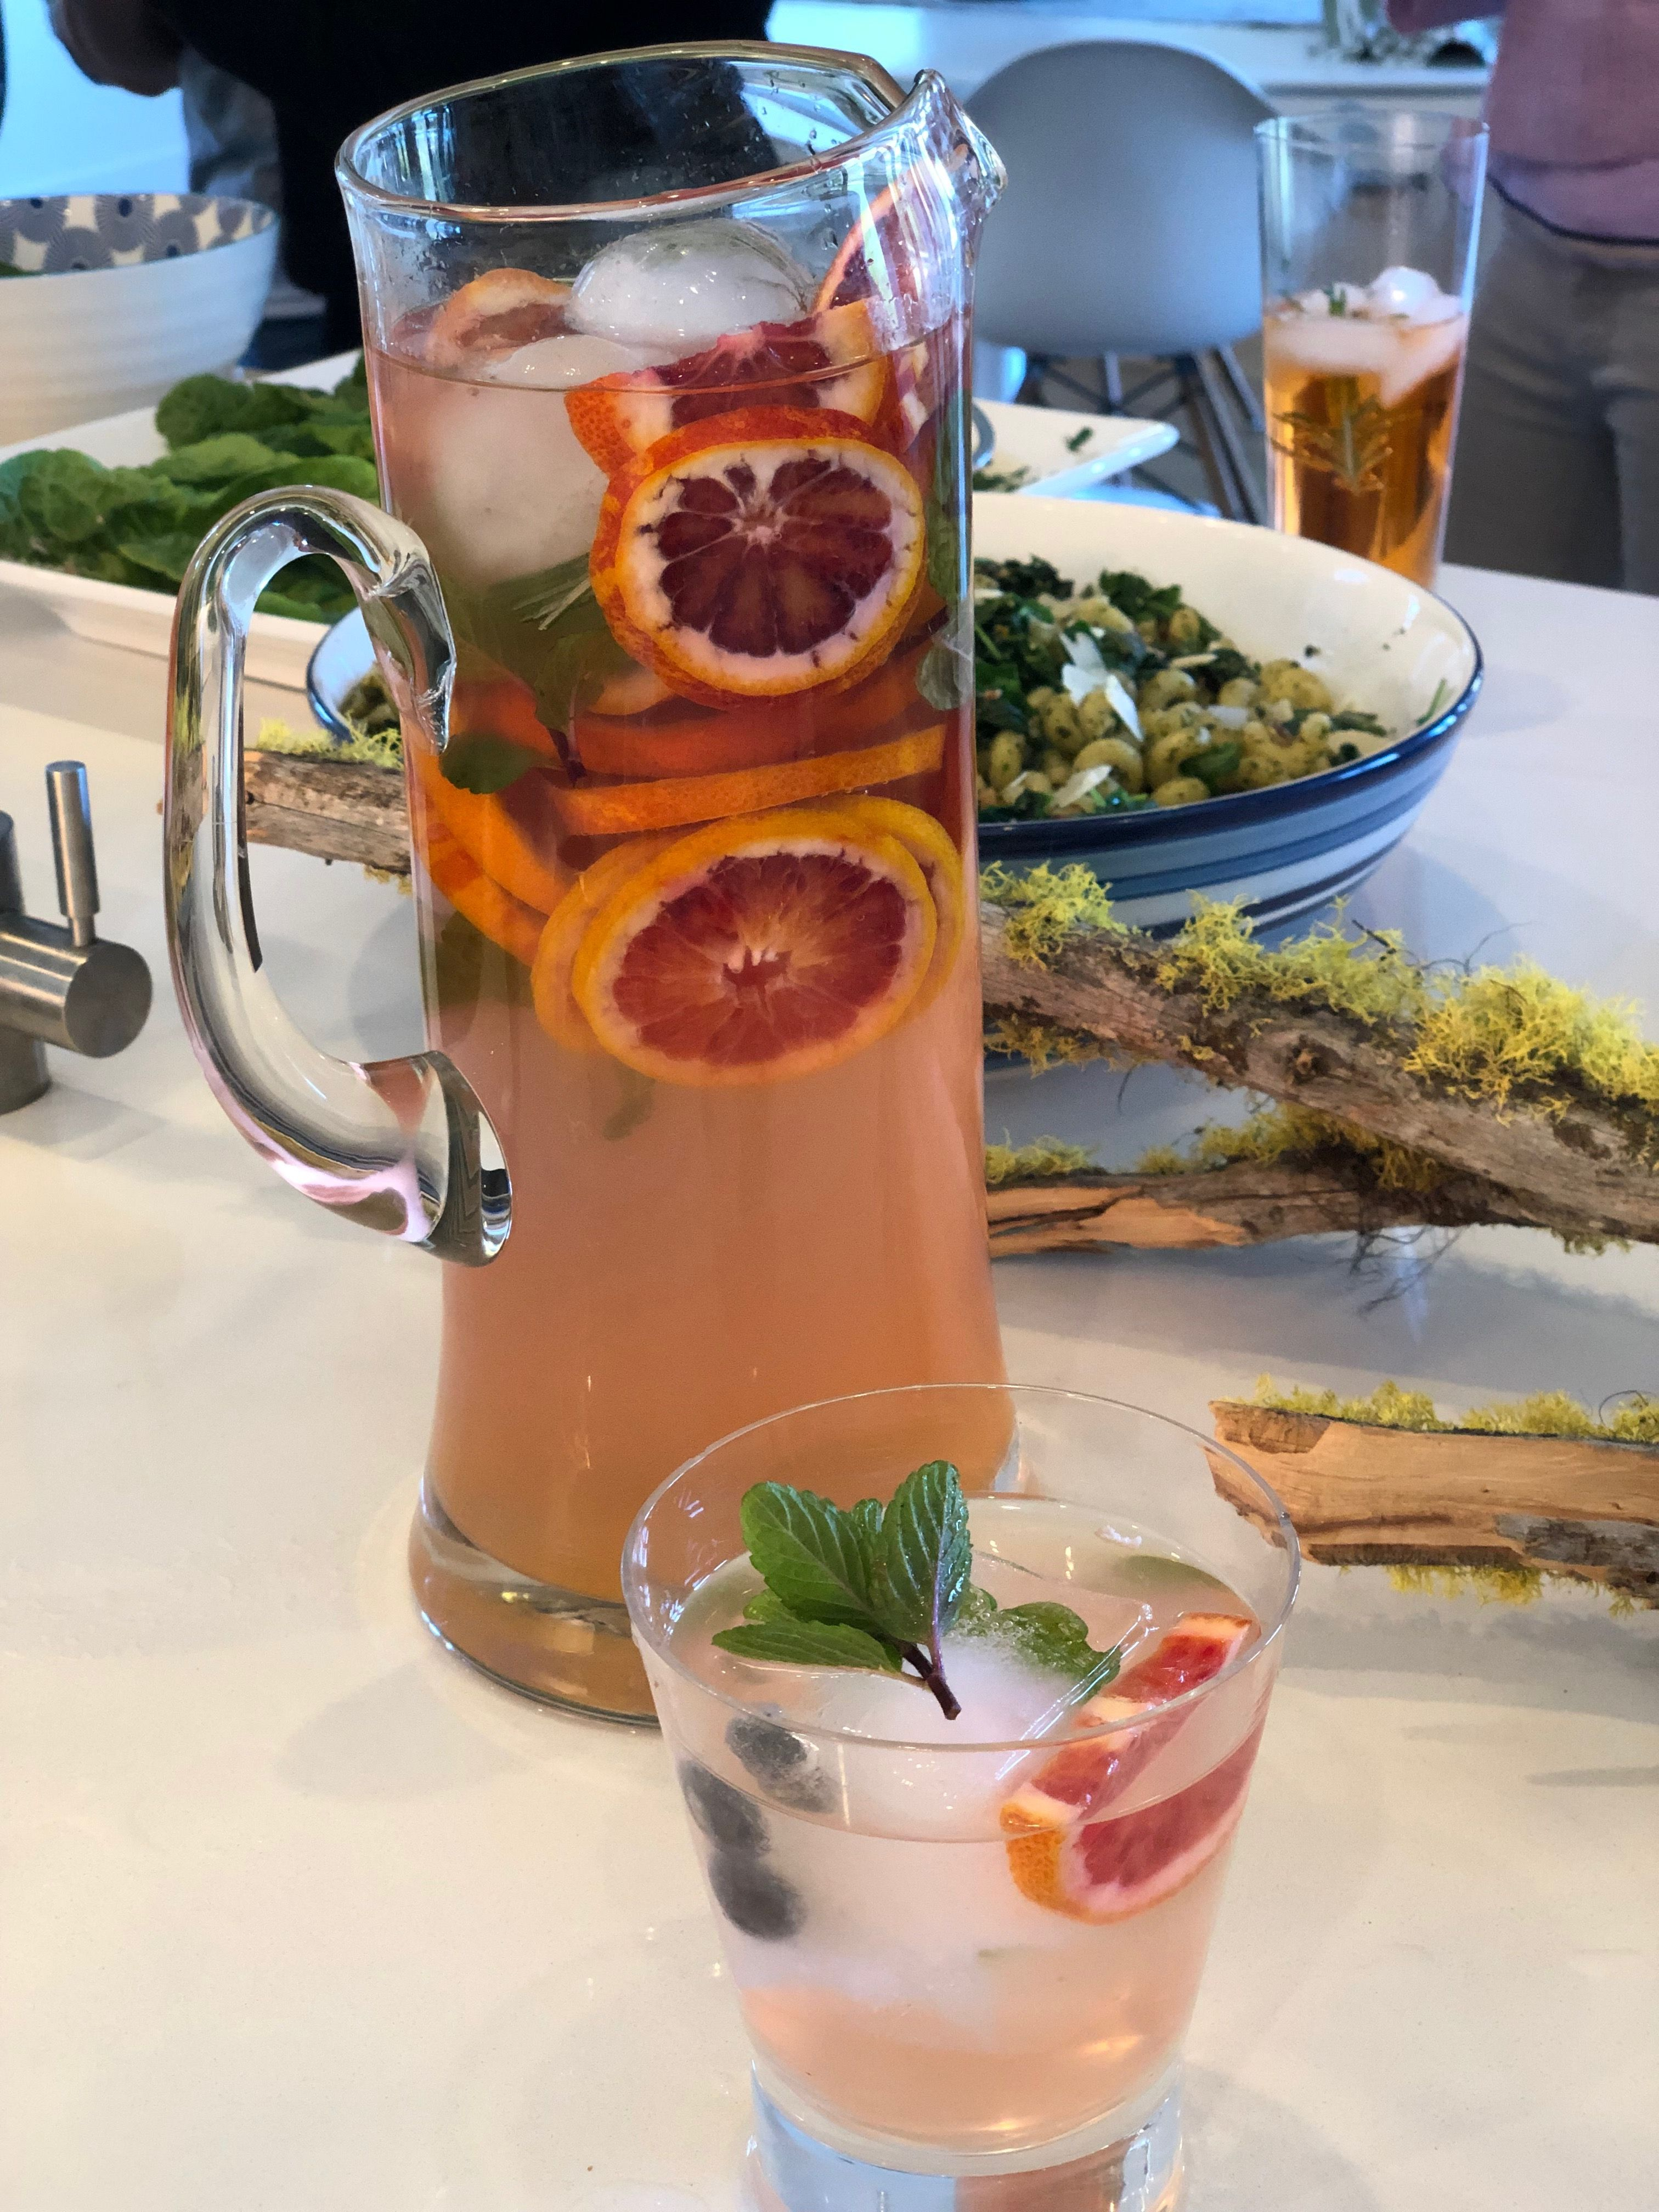 Drinks infused with herbs and citrus from the garden